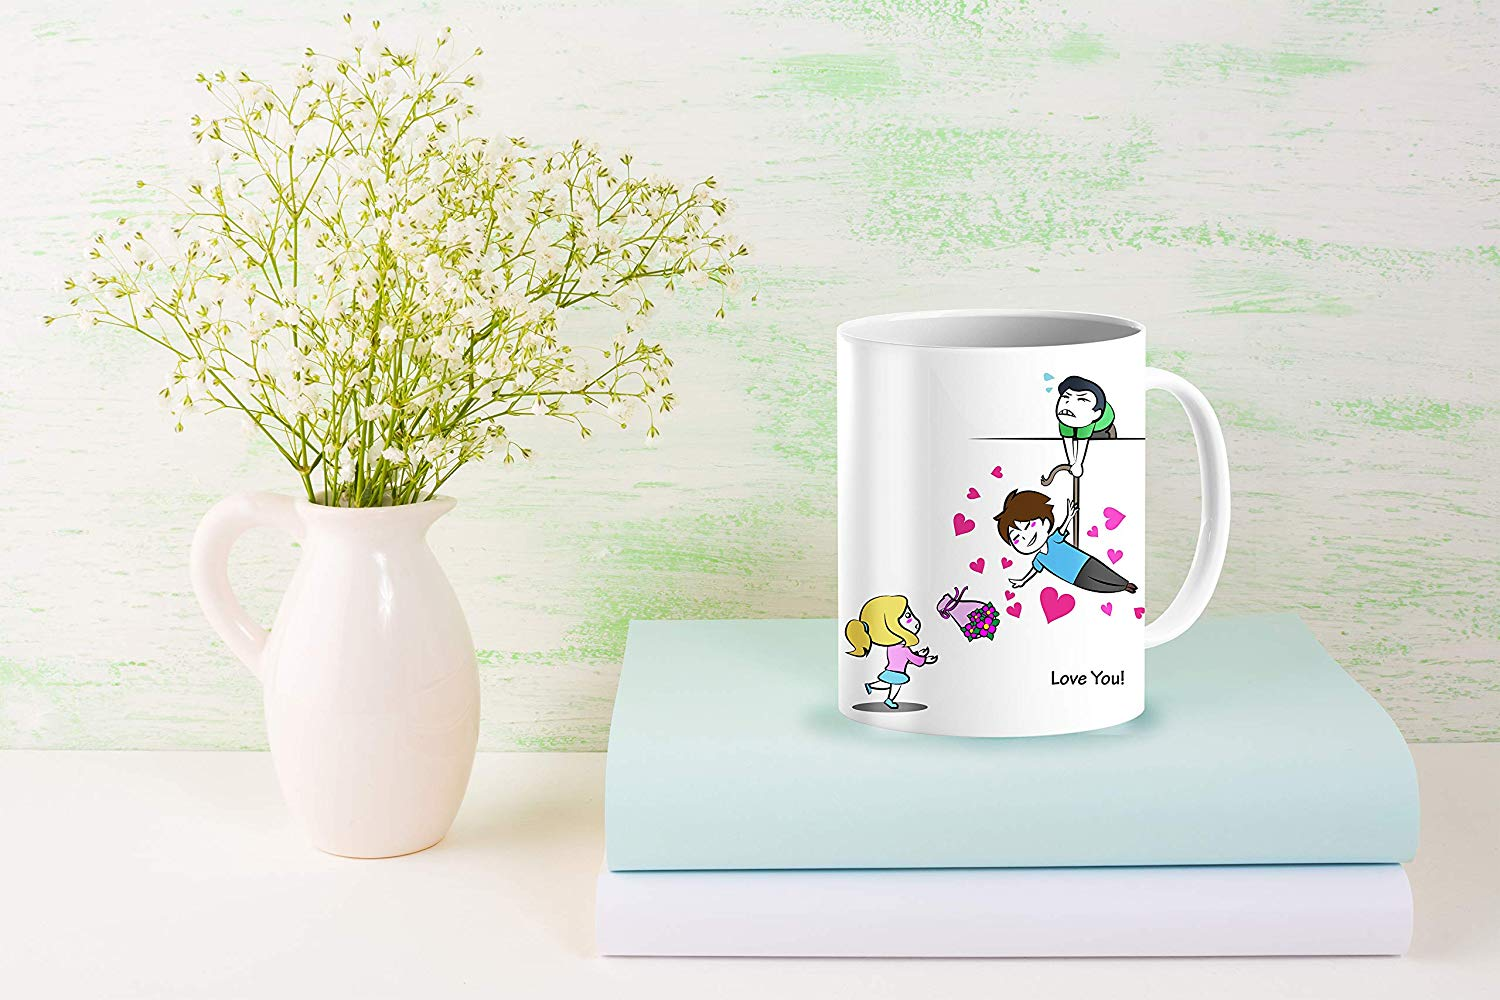 Heat Sensitive Color Changing Coffee Mug Funny Coffee Cup Flying Lovely Cartoon Couple Design Funny Gift Idea B07D21S68R 8